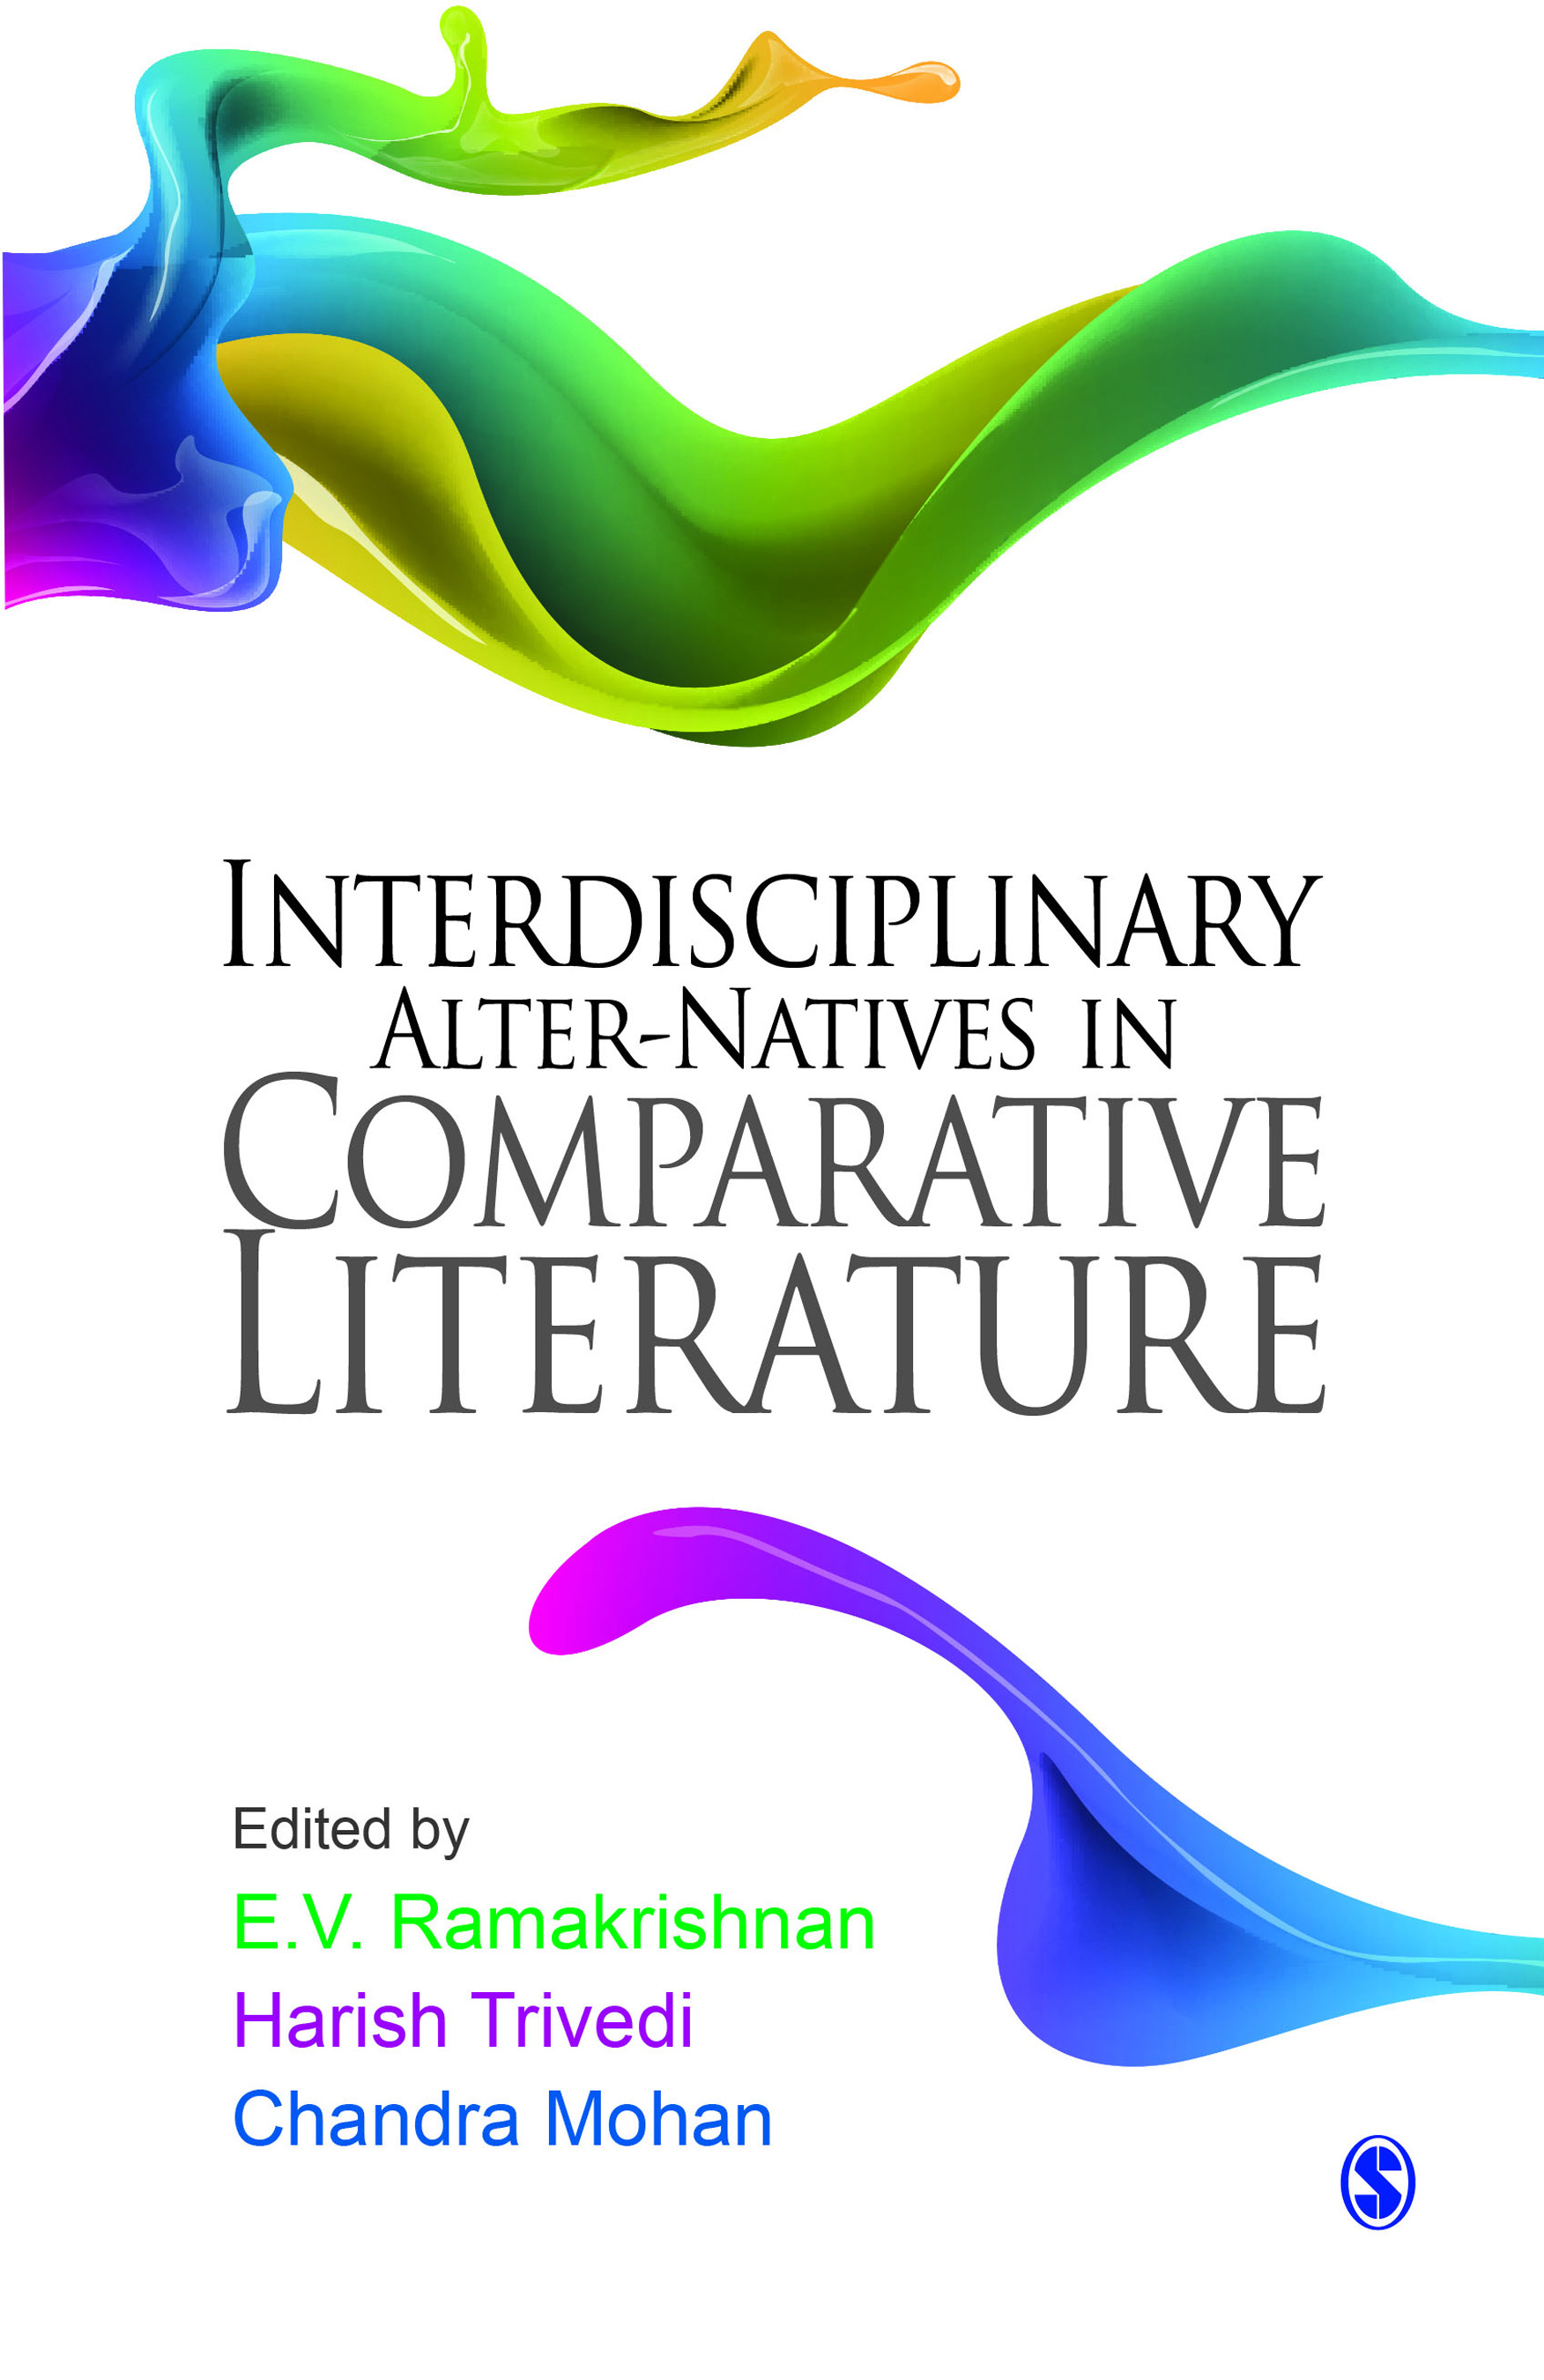 Interdisciplinary Alter-natives in Comparative Literature